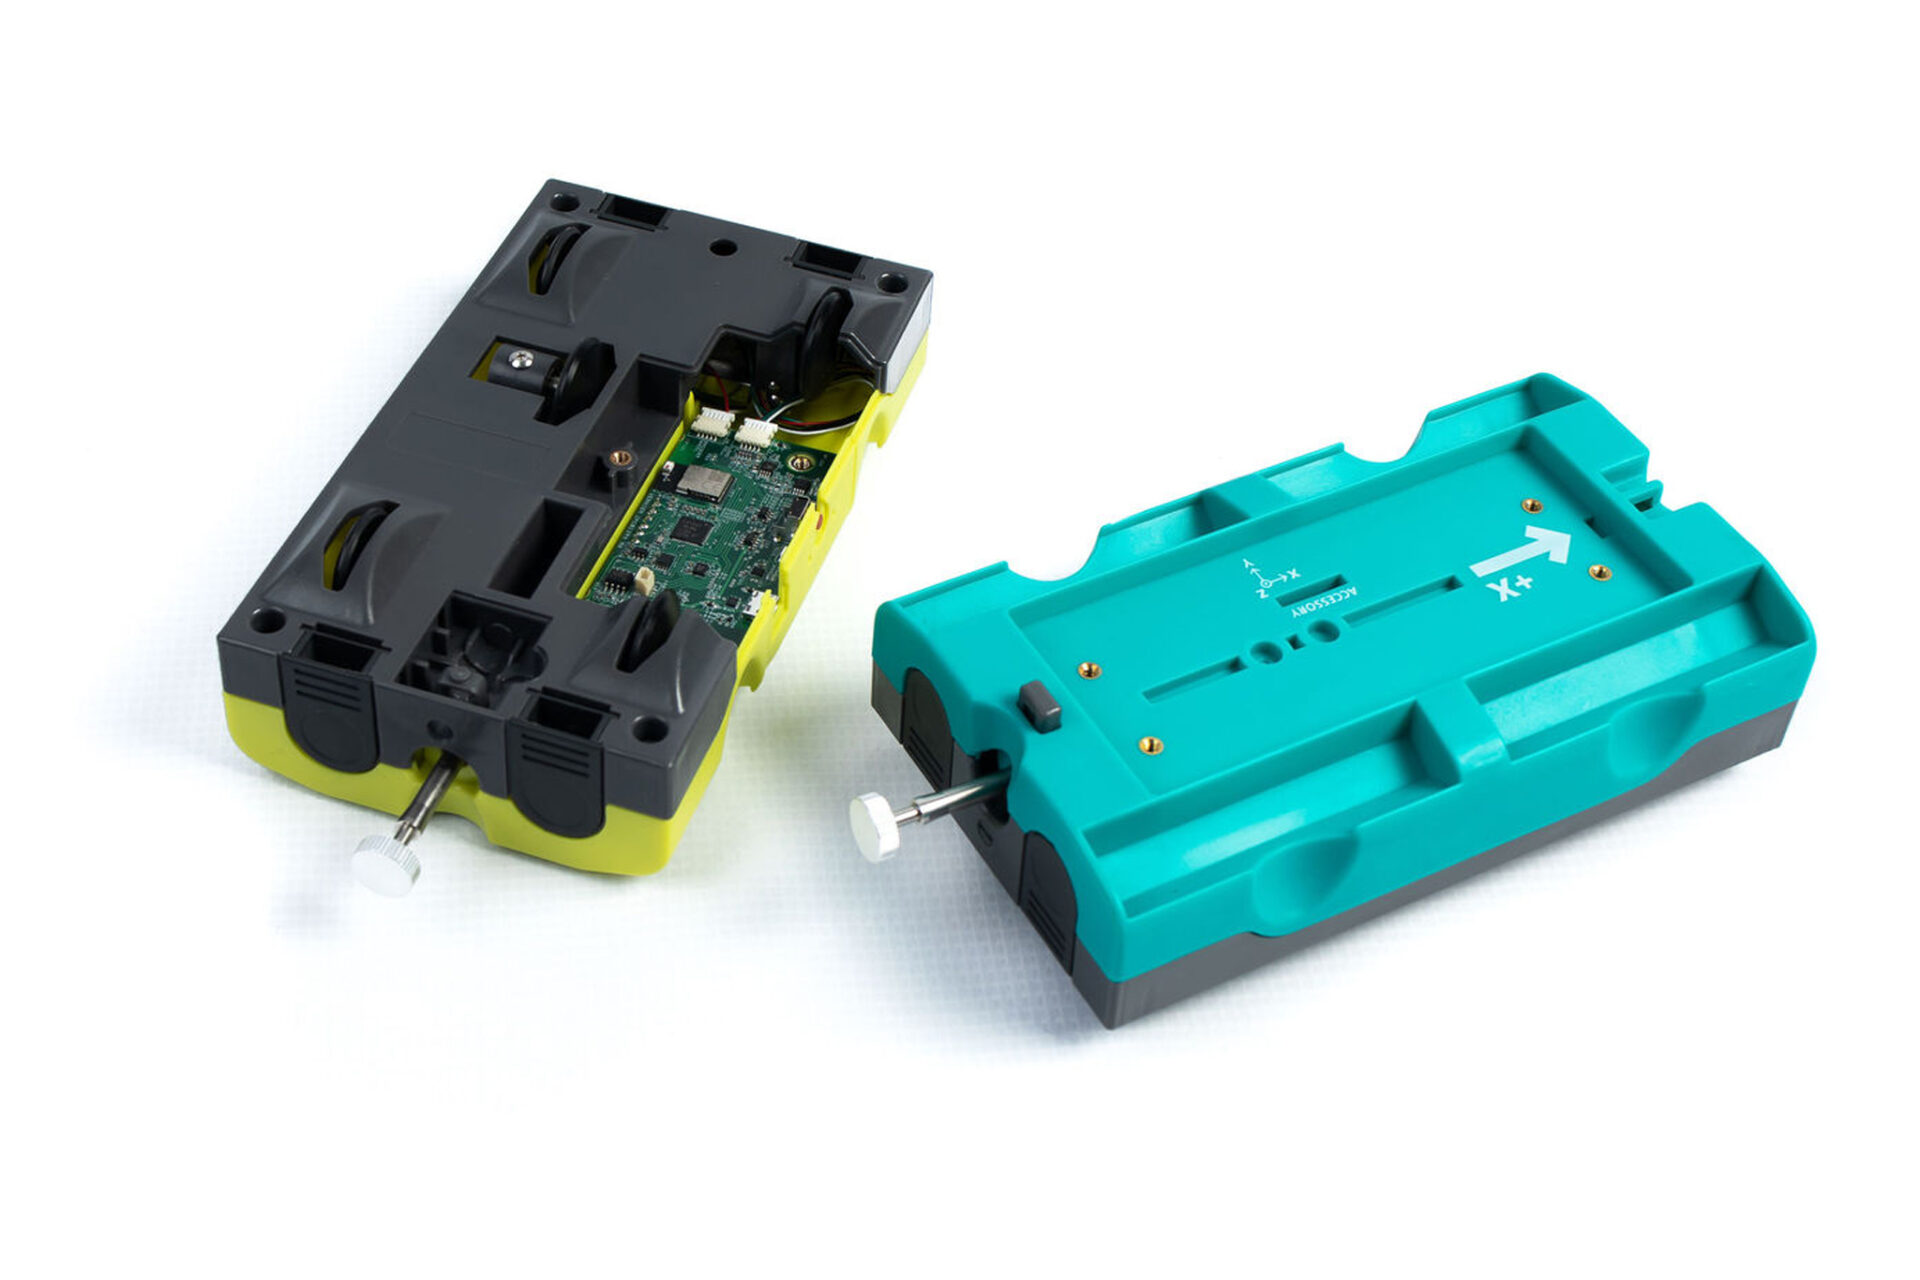 neon yellow and bright turquoise plastic smart dynamics carts